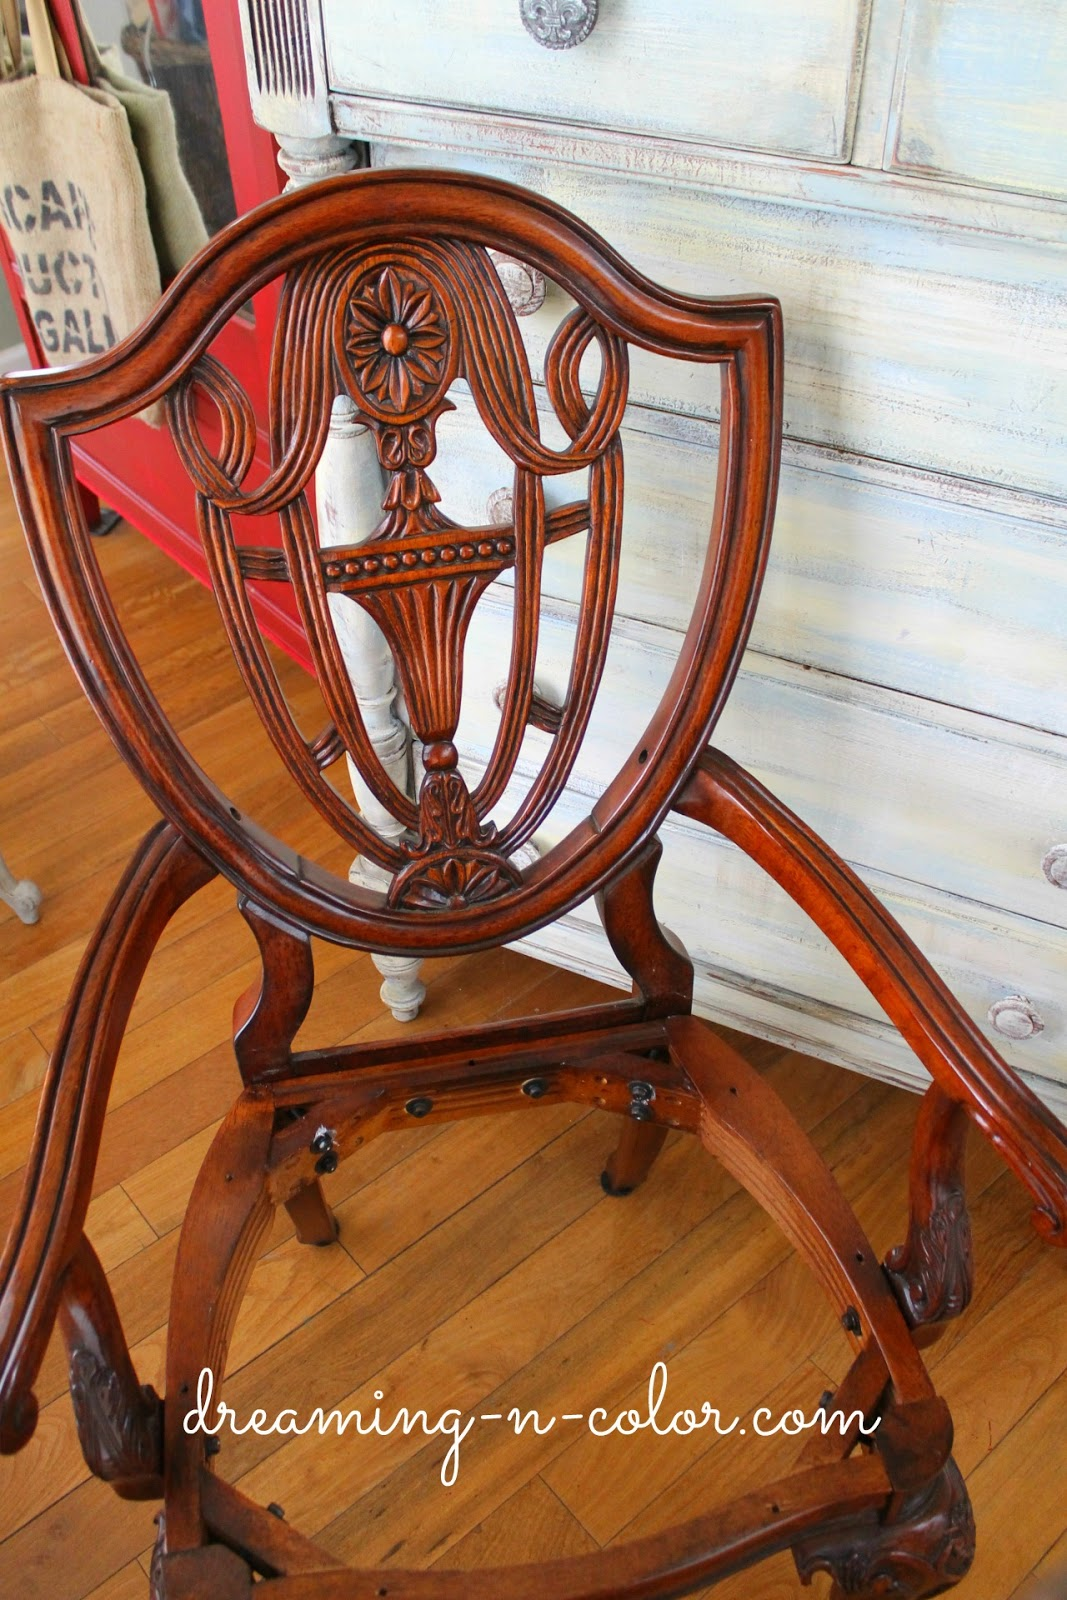 dreamingincolor: Carved Painted Chairs